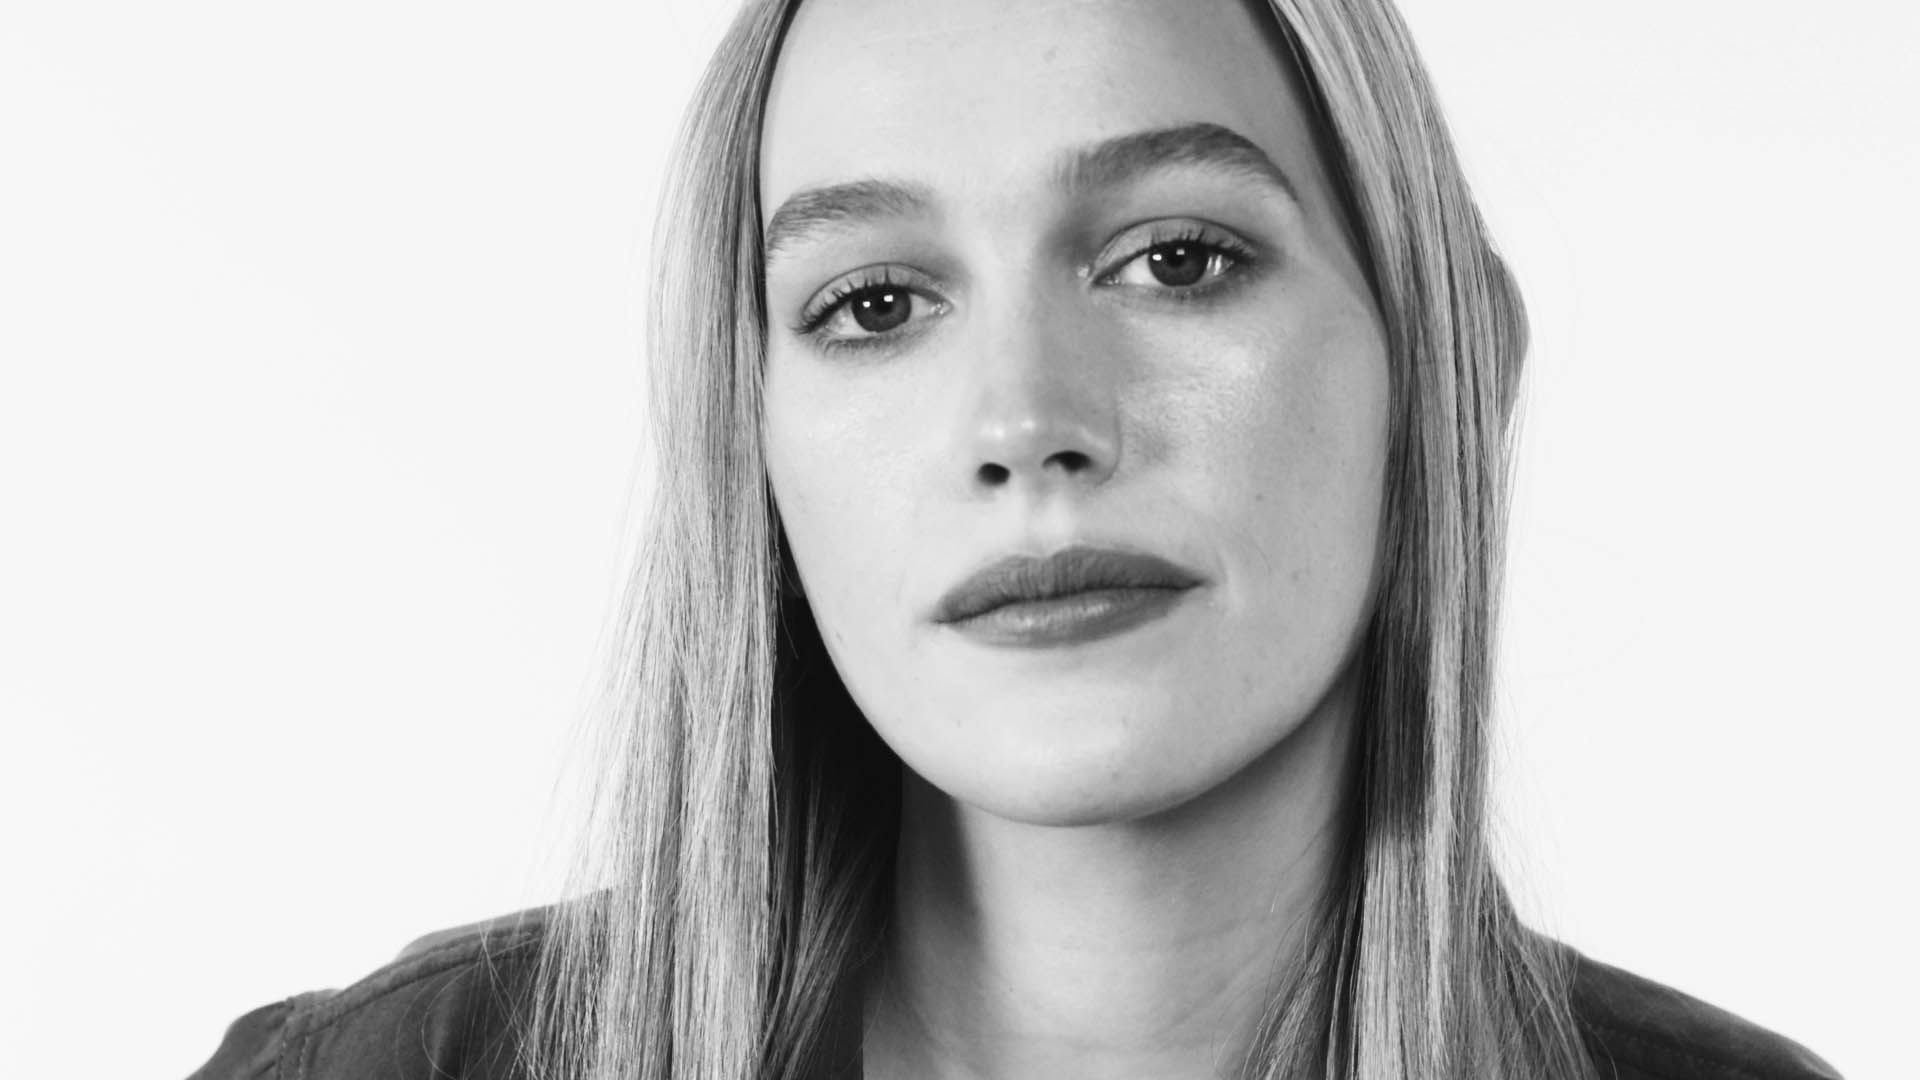 Victoria Pedretti Talks Working with Penn Badgley, Being Cast in You, and Wanting to Work with Taika Waititi